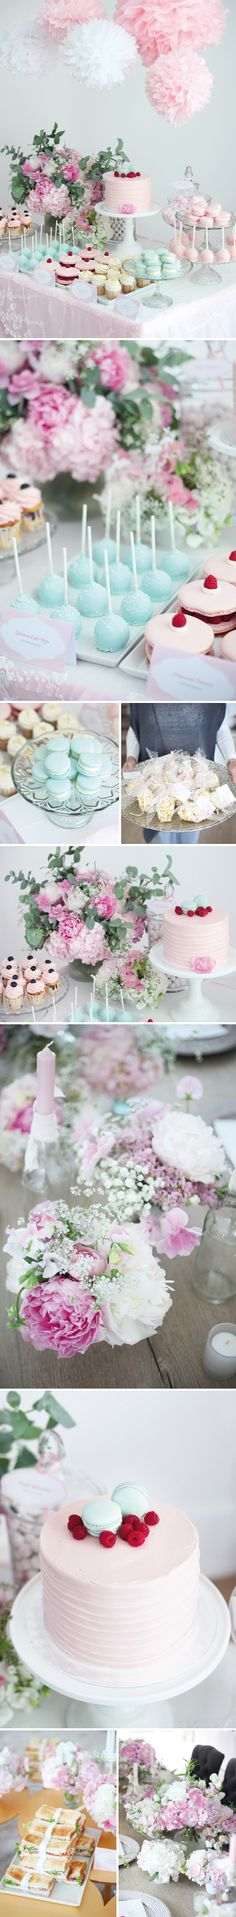 Mint & pink baby shower party ideas // kids party ideas - Home Page Shower Party, Baby Shower Parties, Baby Shower Themes, Bridal Shower, Shower Ideas, Party Fiesta, Festa Party, Pastell Party, Comida Para Baby Shower